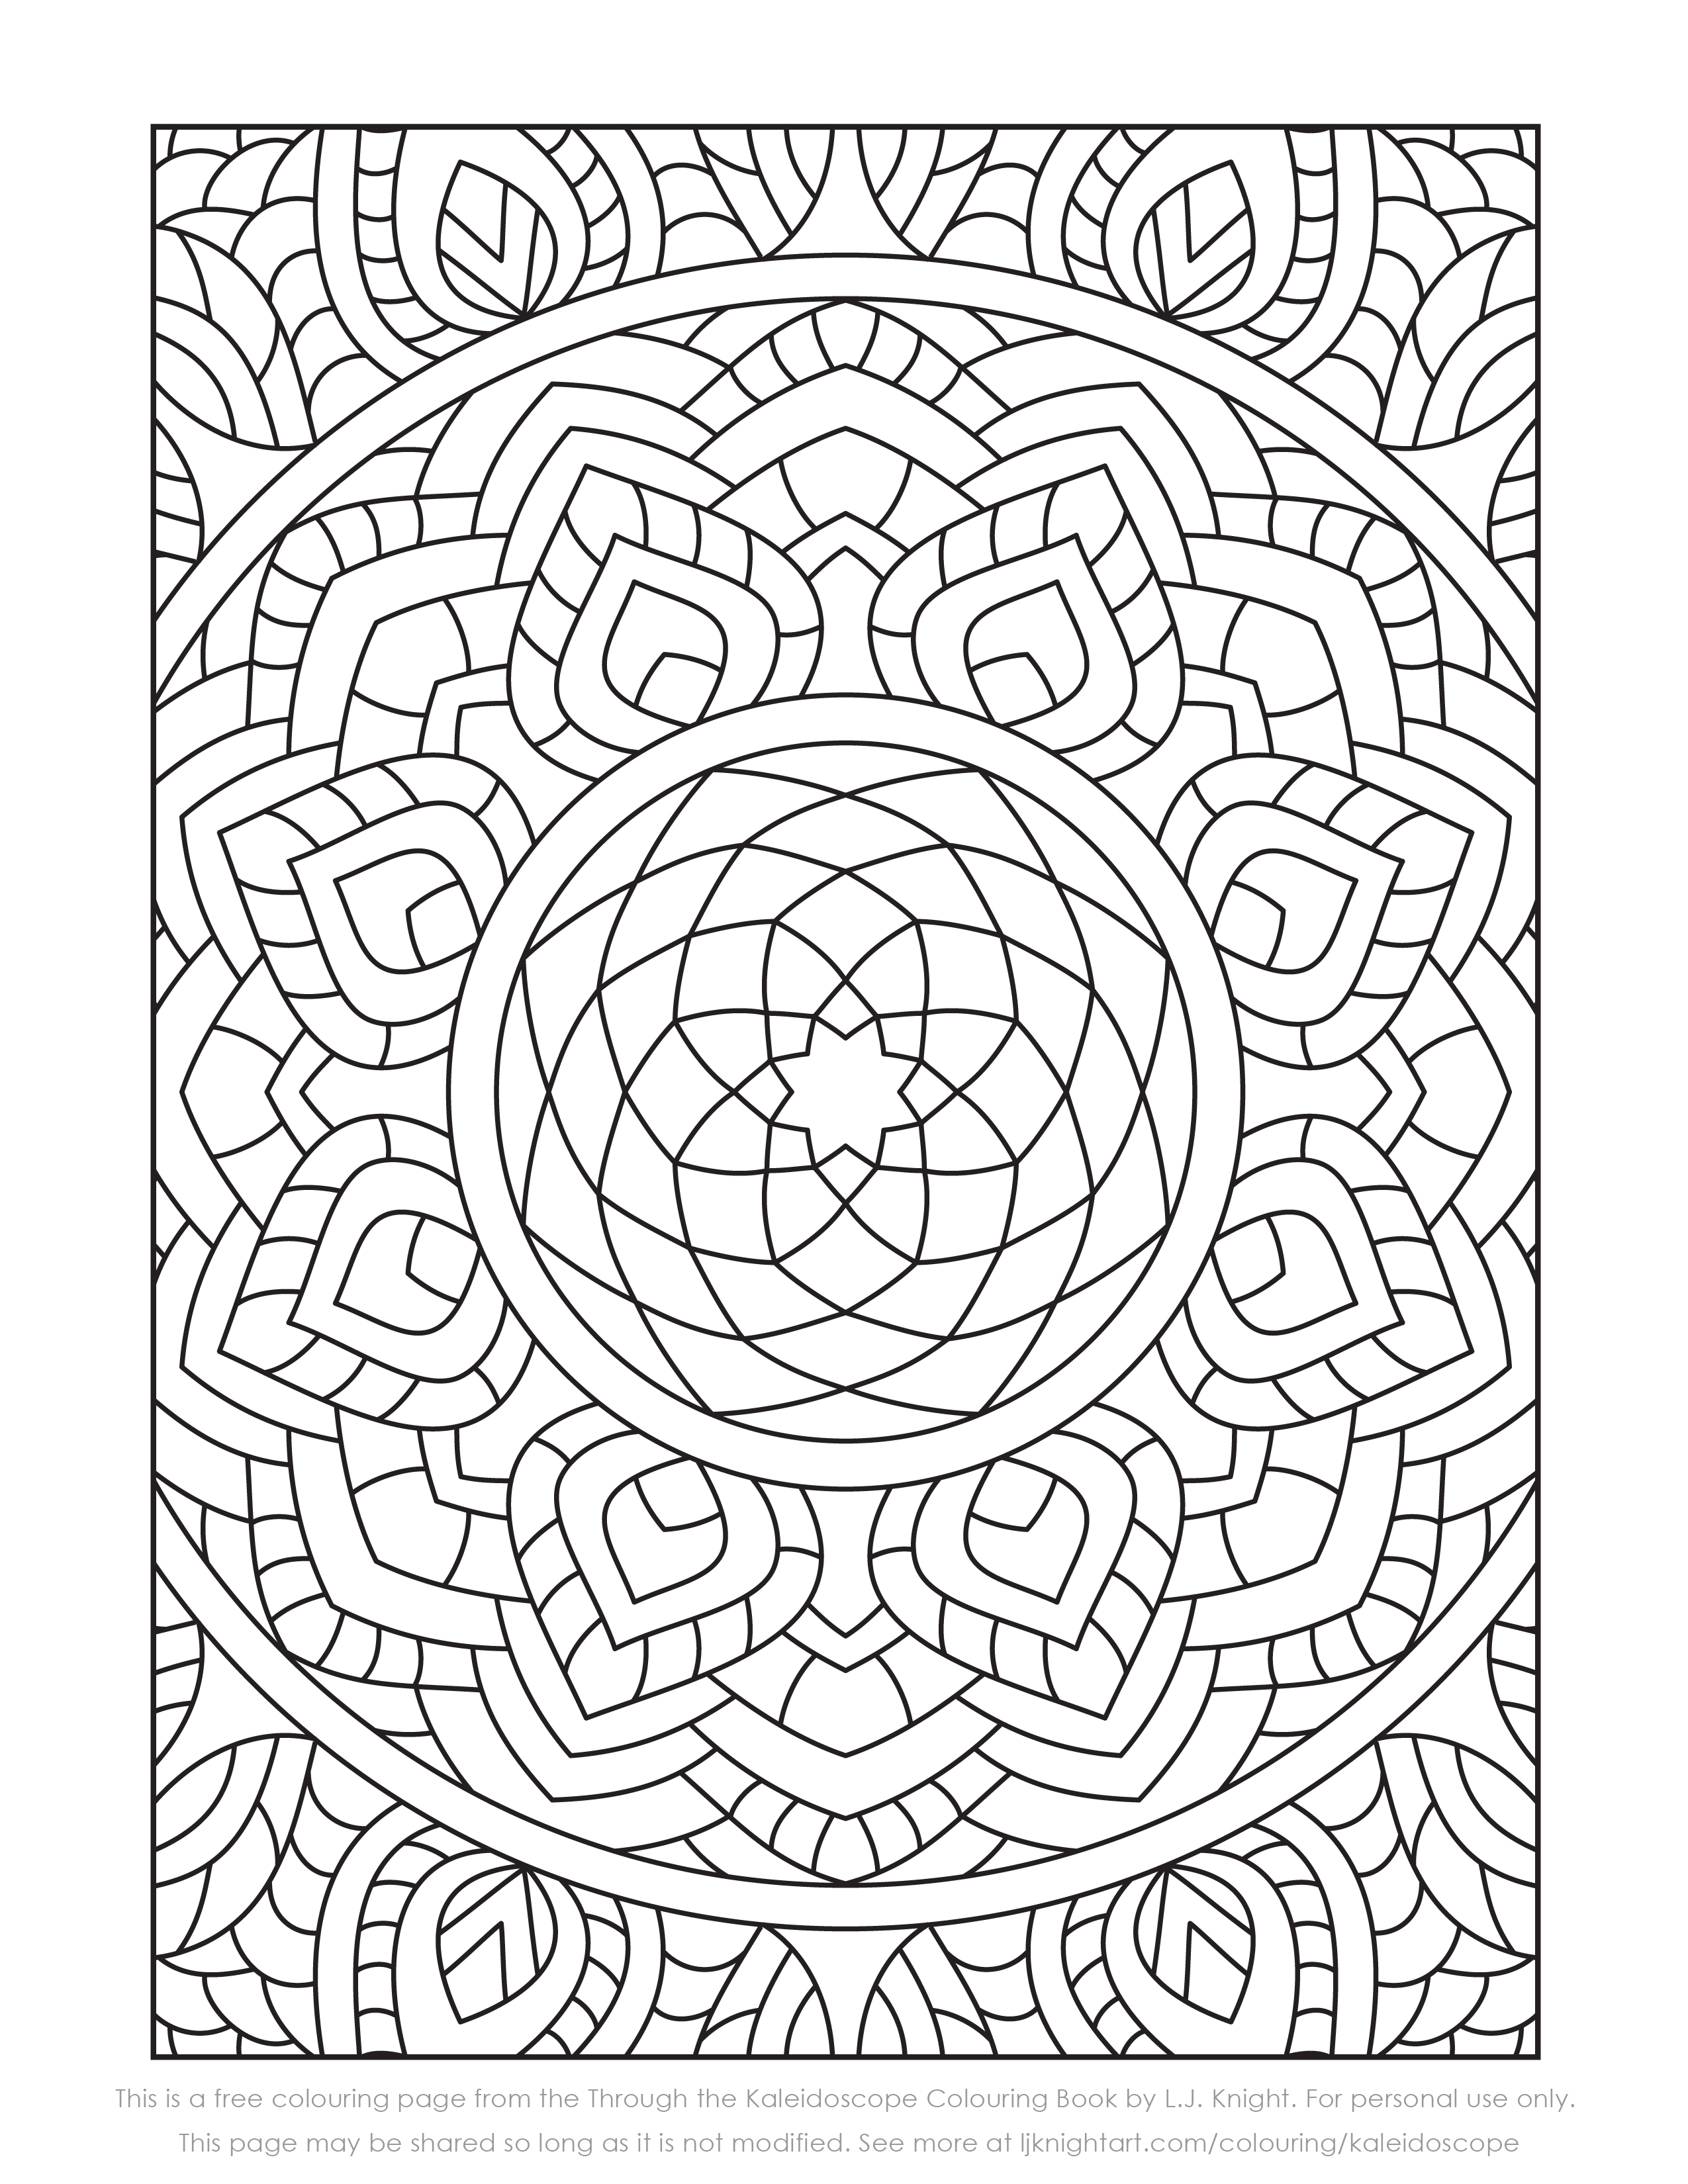 Free Kaleidoscope Colouring Page Download   L.J. Knight